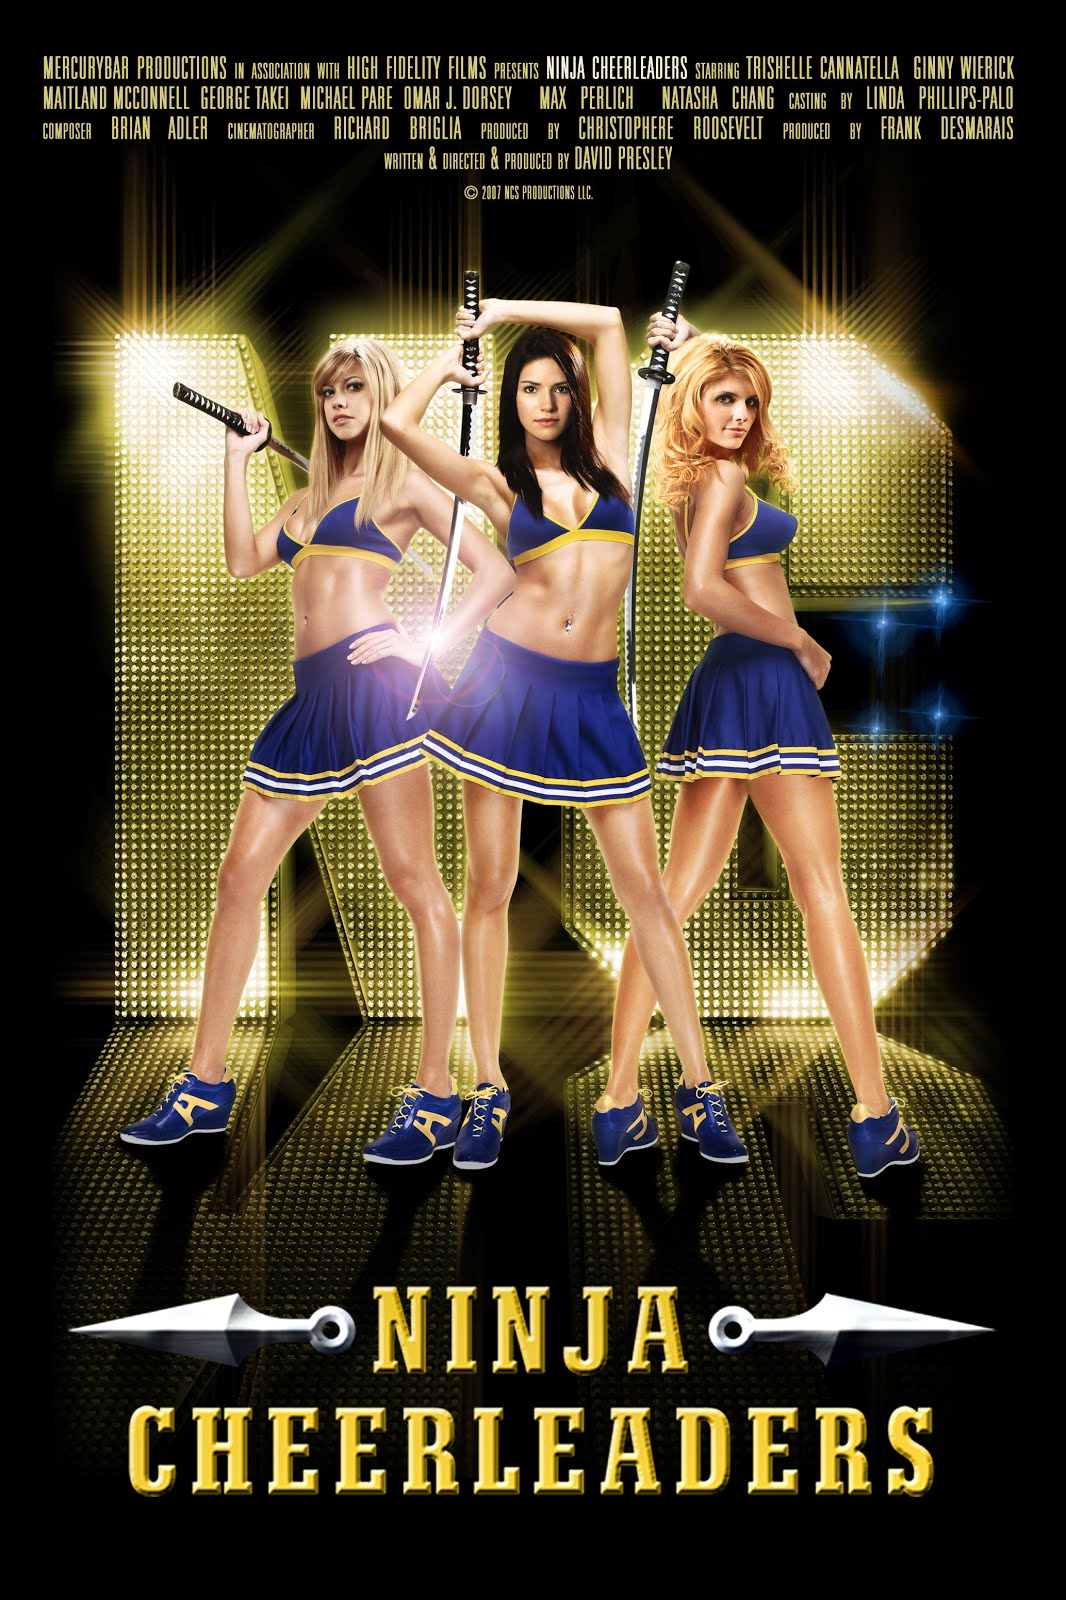 18+ Ninja Cheerleaders (2008) full hd Unrated Dual Audio Hindi 480p BluRay 350MB